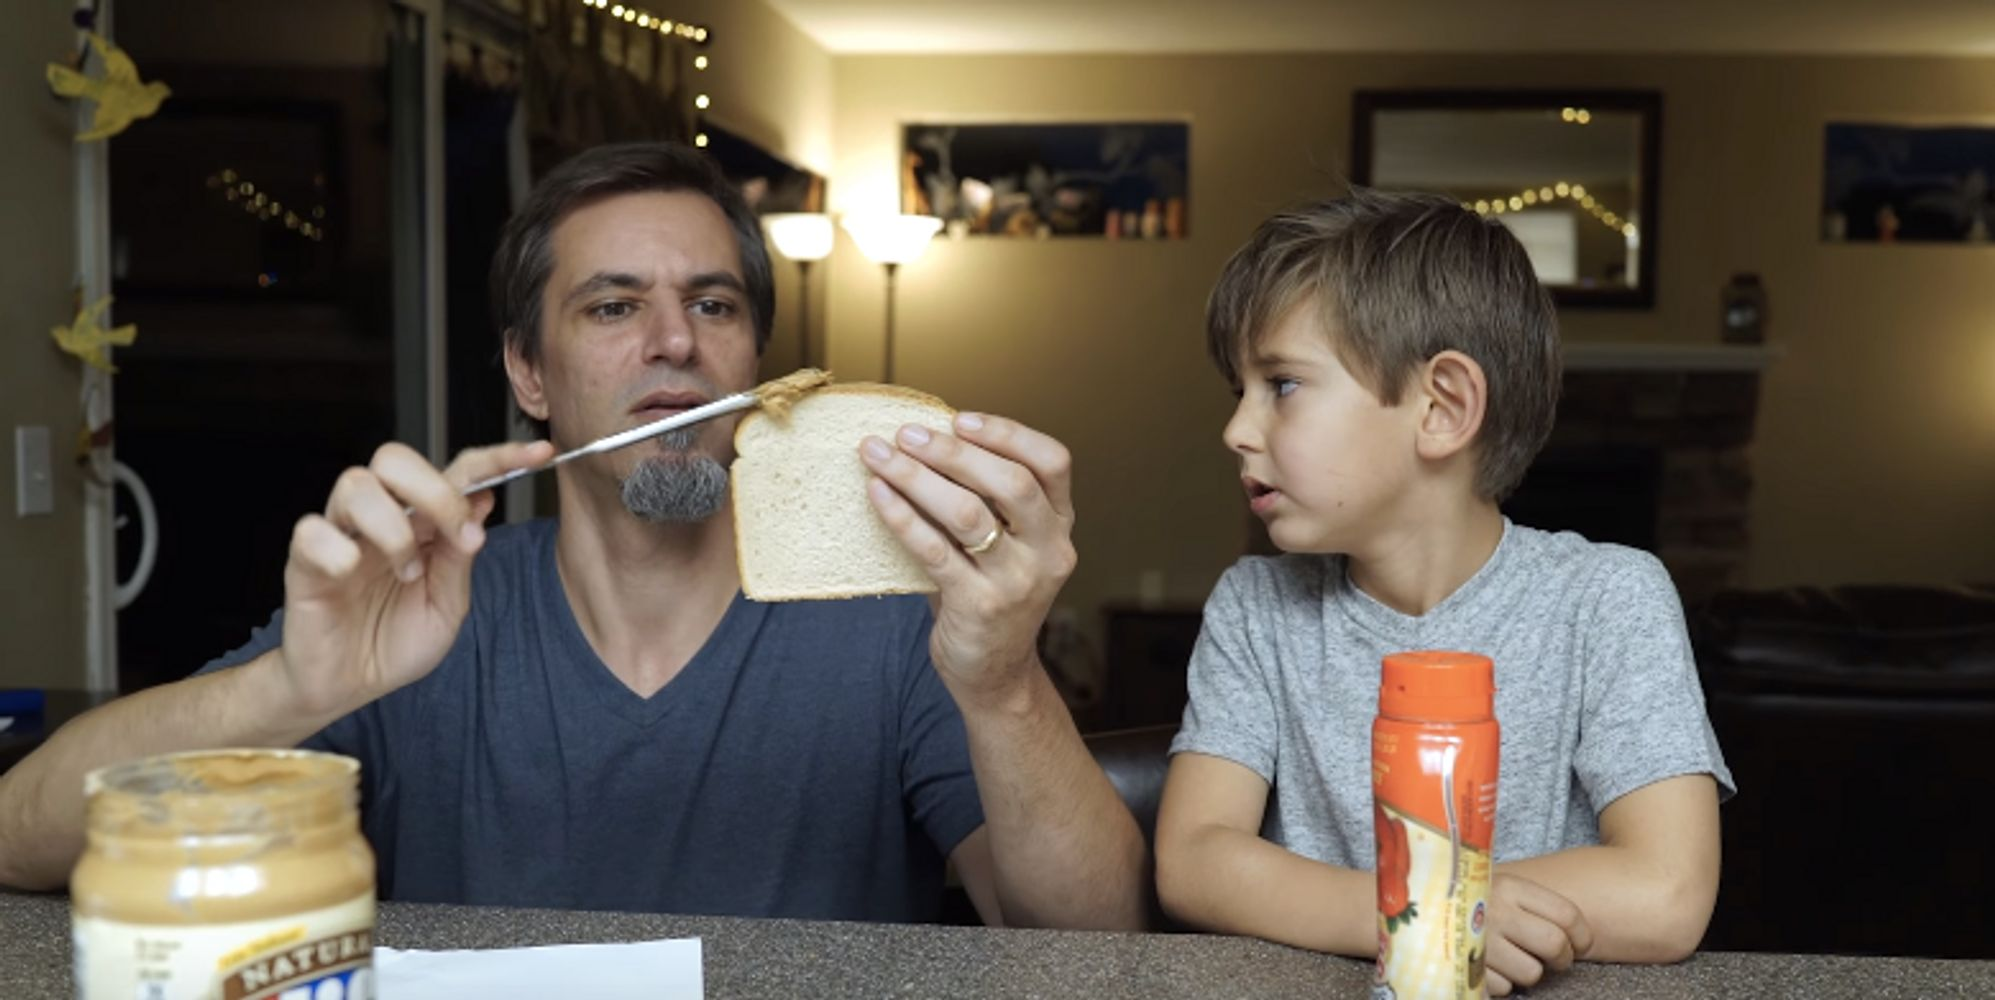 huffingtonpost.com - Dad Annoys The Heck Out Of His Kids By Making PB&Js Based On Their Instructions